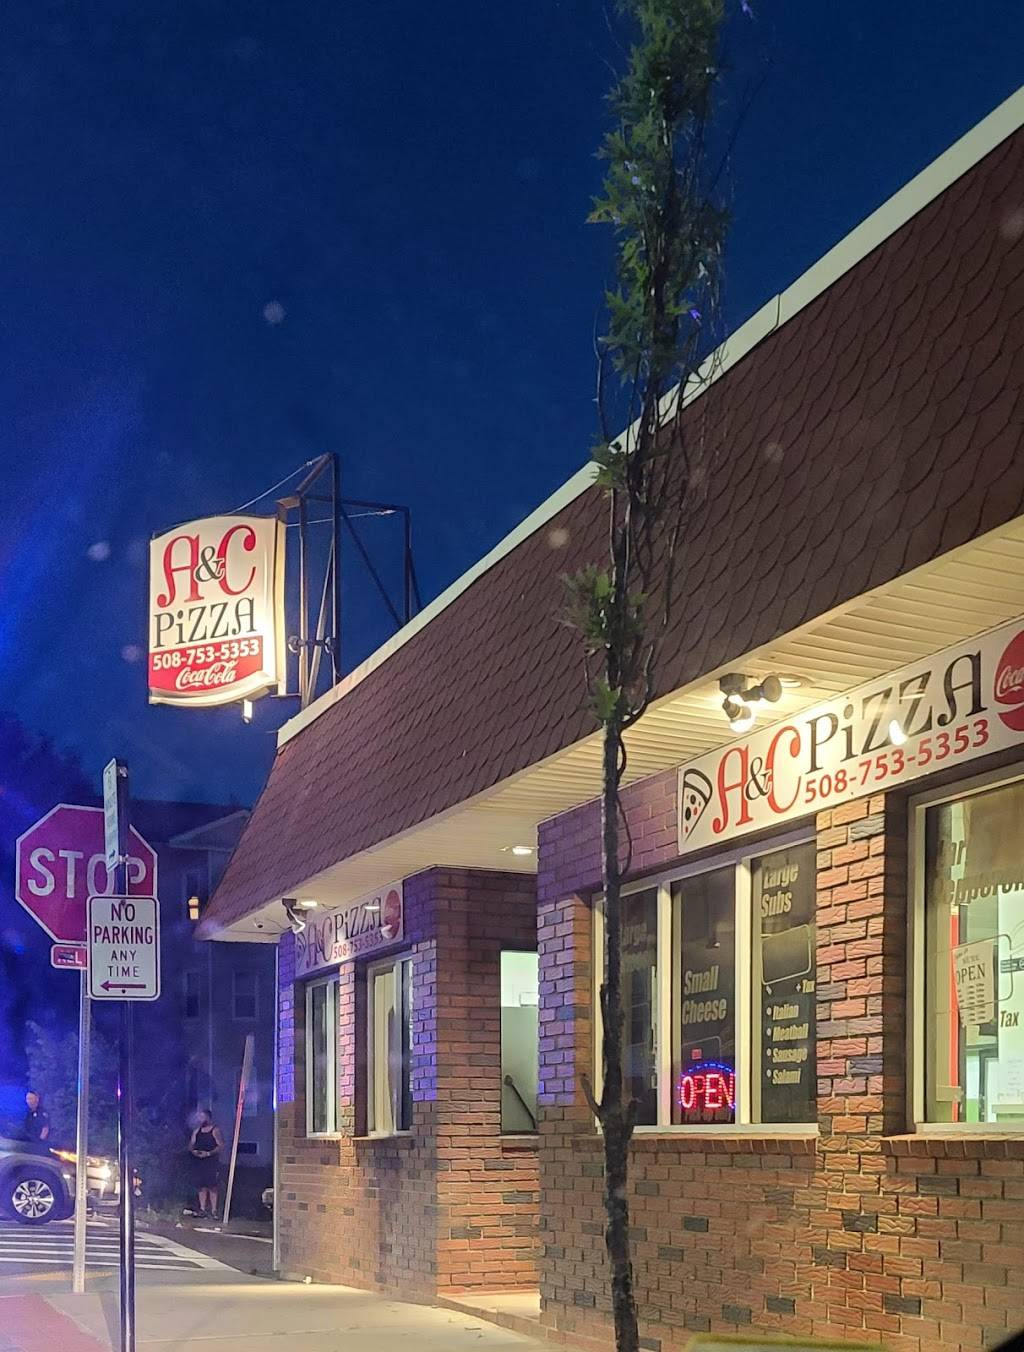 A&C Pizza | restaurant | 90 Providence St, Worcester, MA 01604, USA | 5087535353 OR +1 508-753-5353